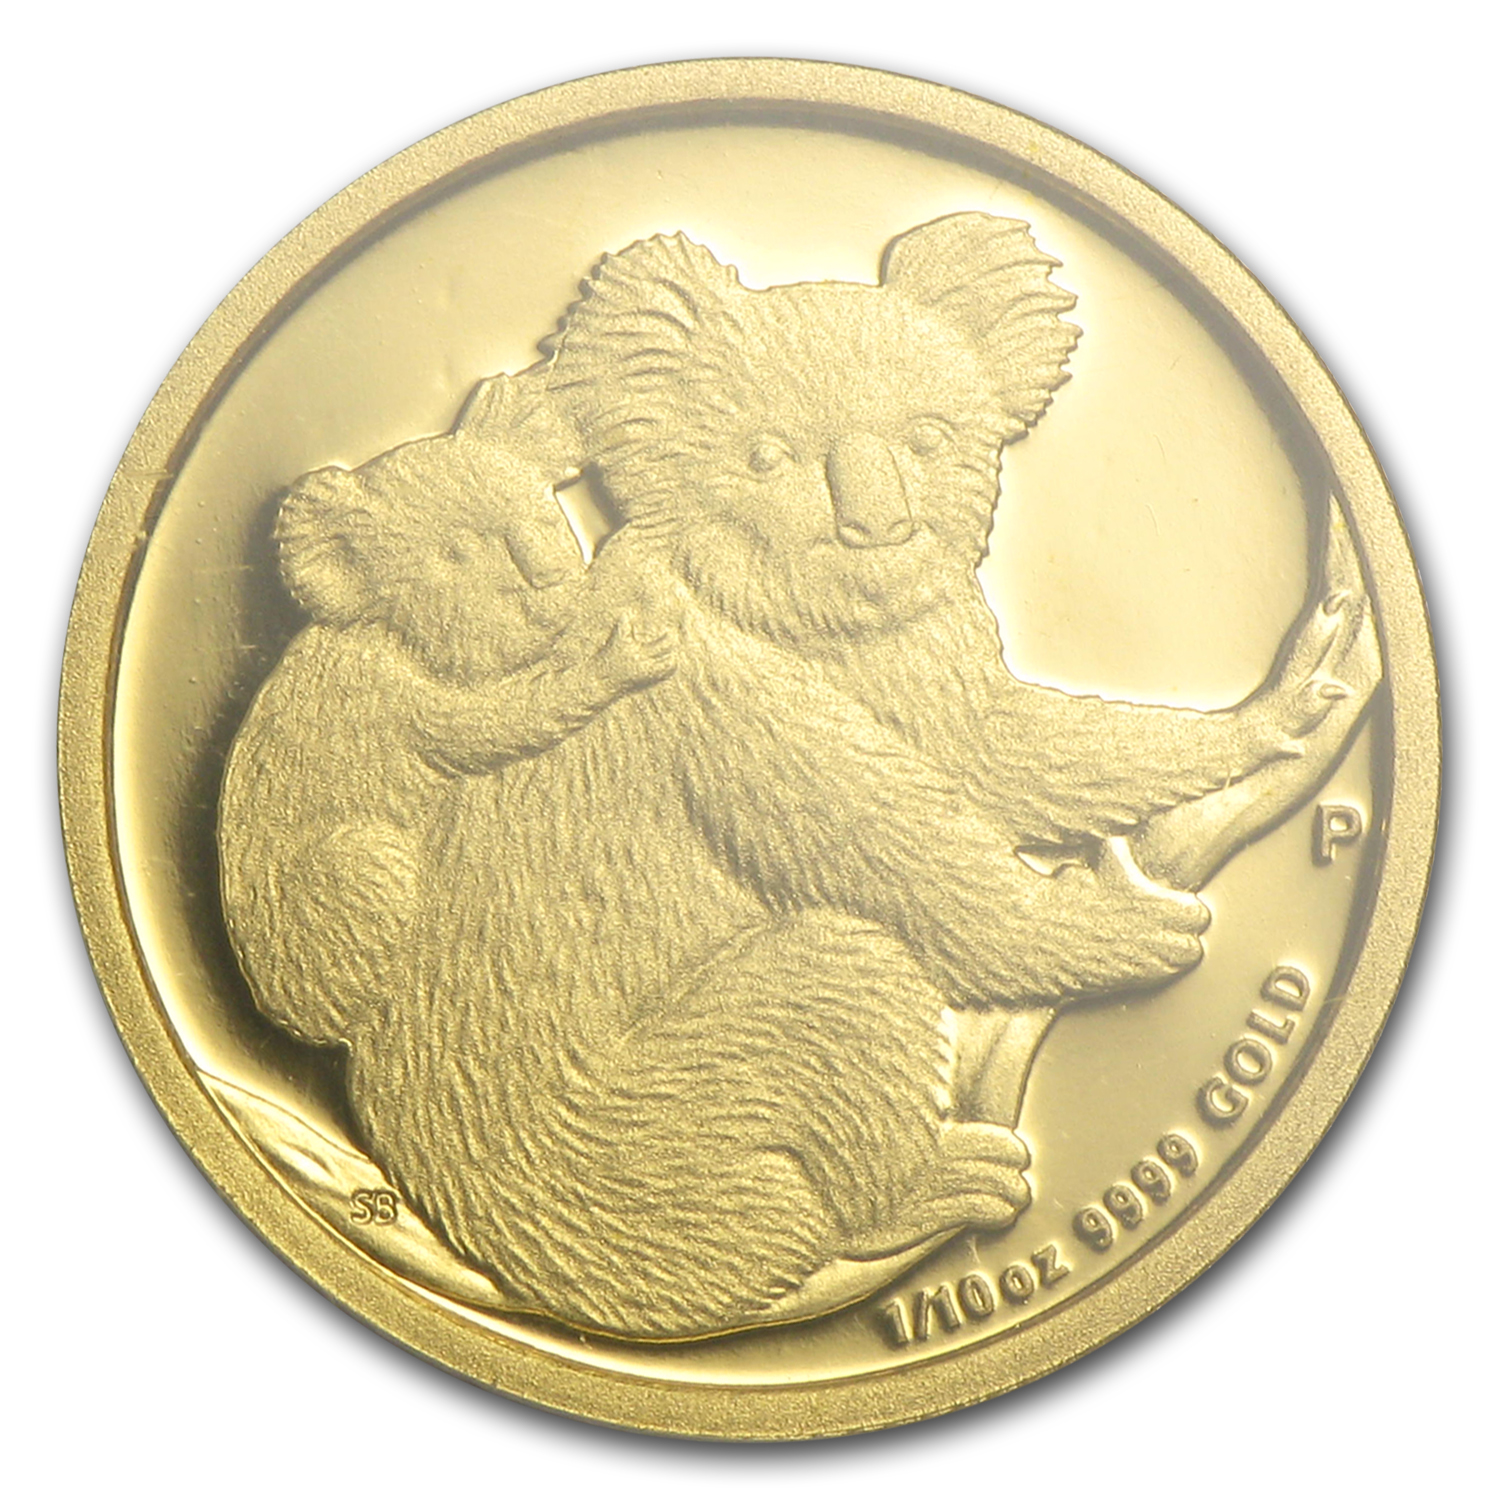 2008-P Australia 1/10 oz Gold Koala Gem Proof PCGS (First Strike)